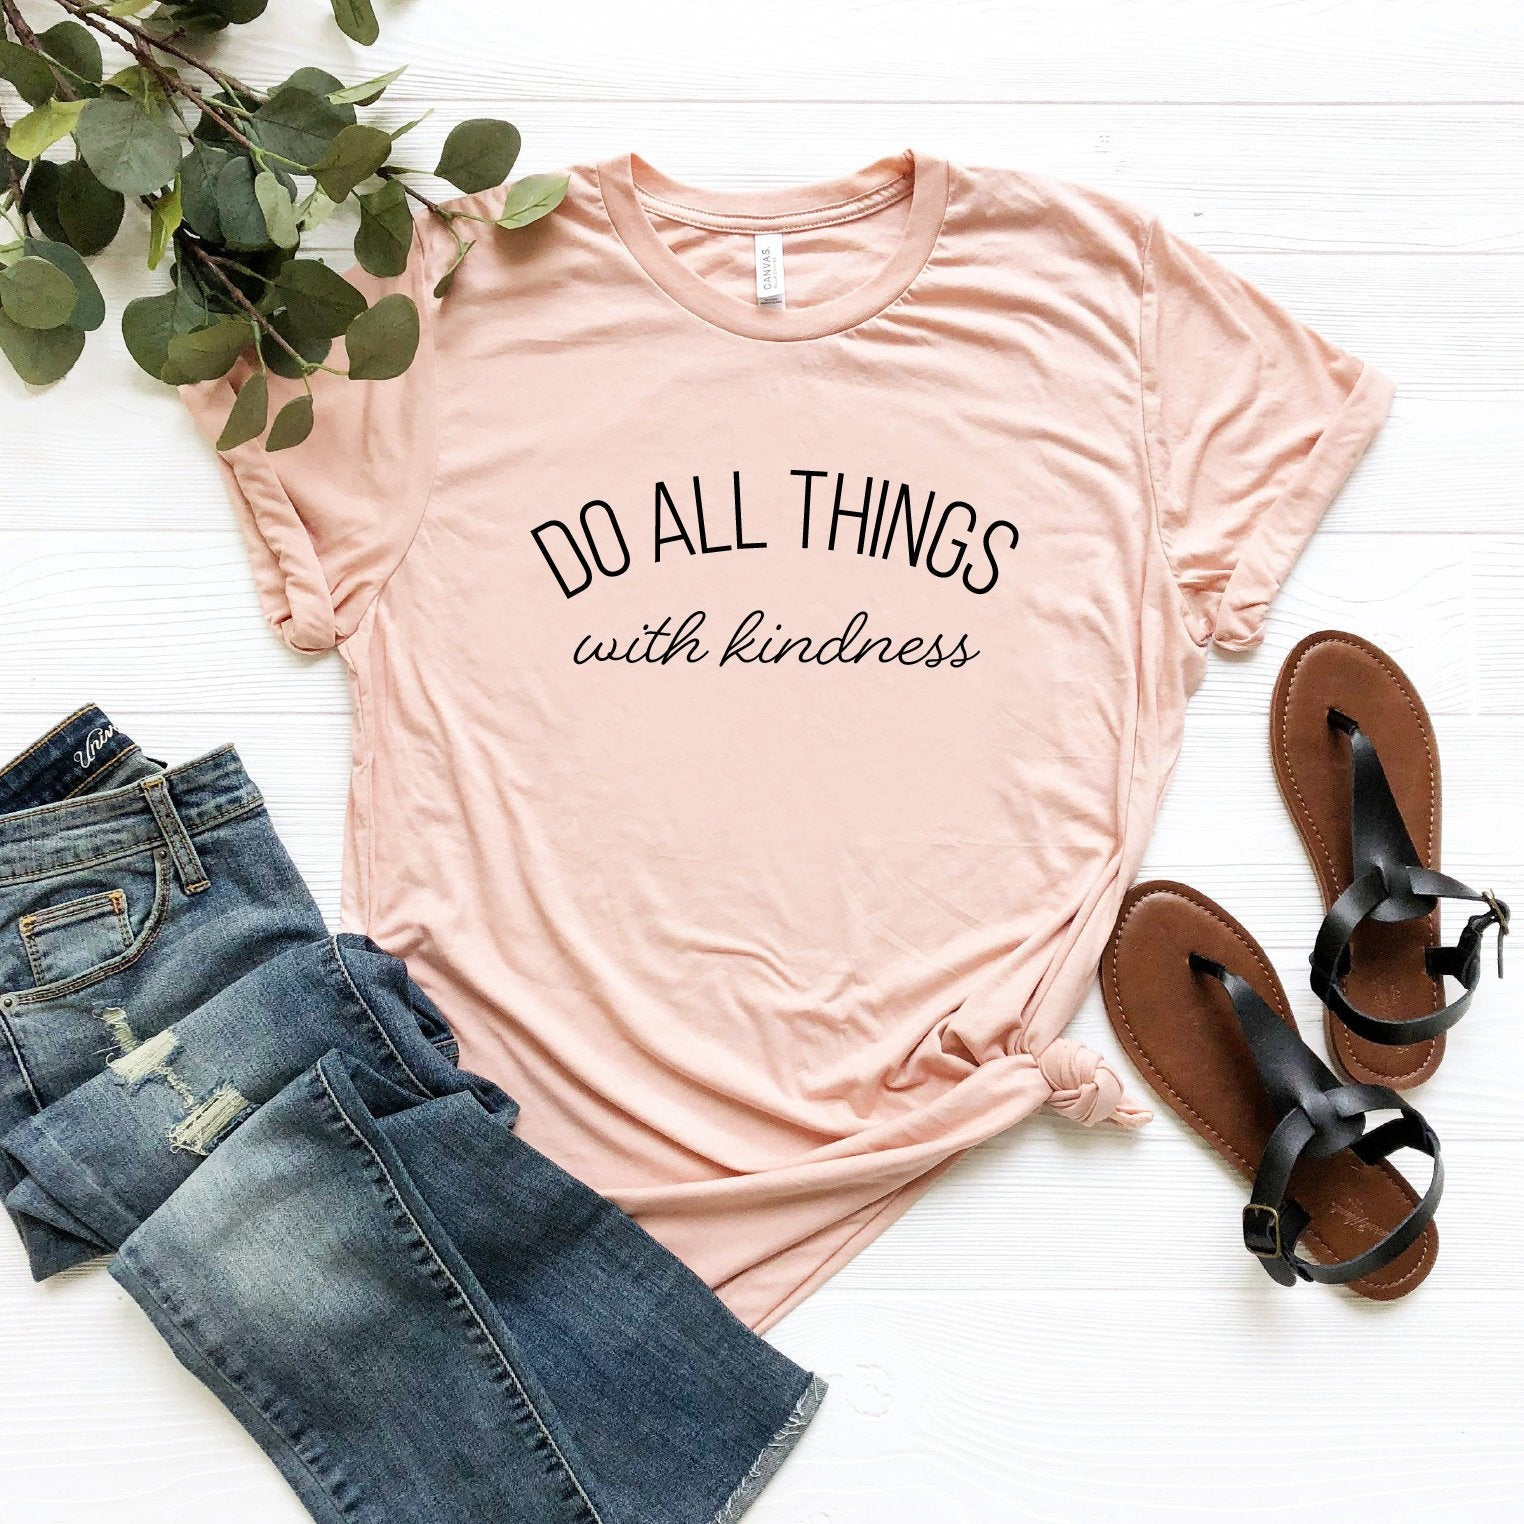 Do All Things With Kindness (Curved Text)